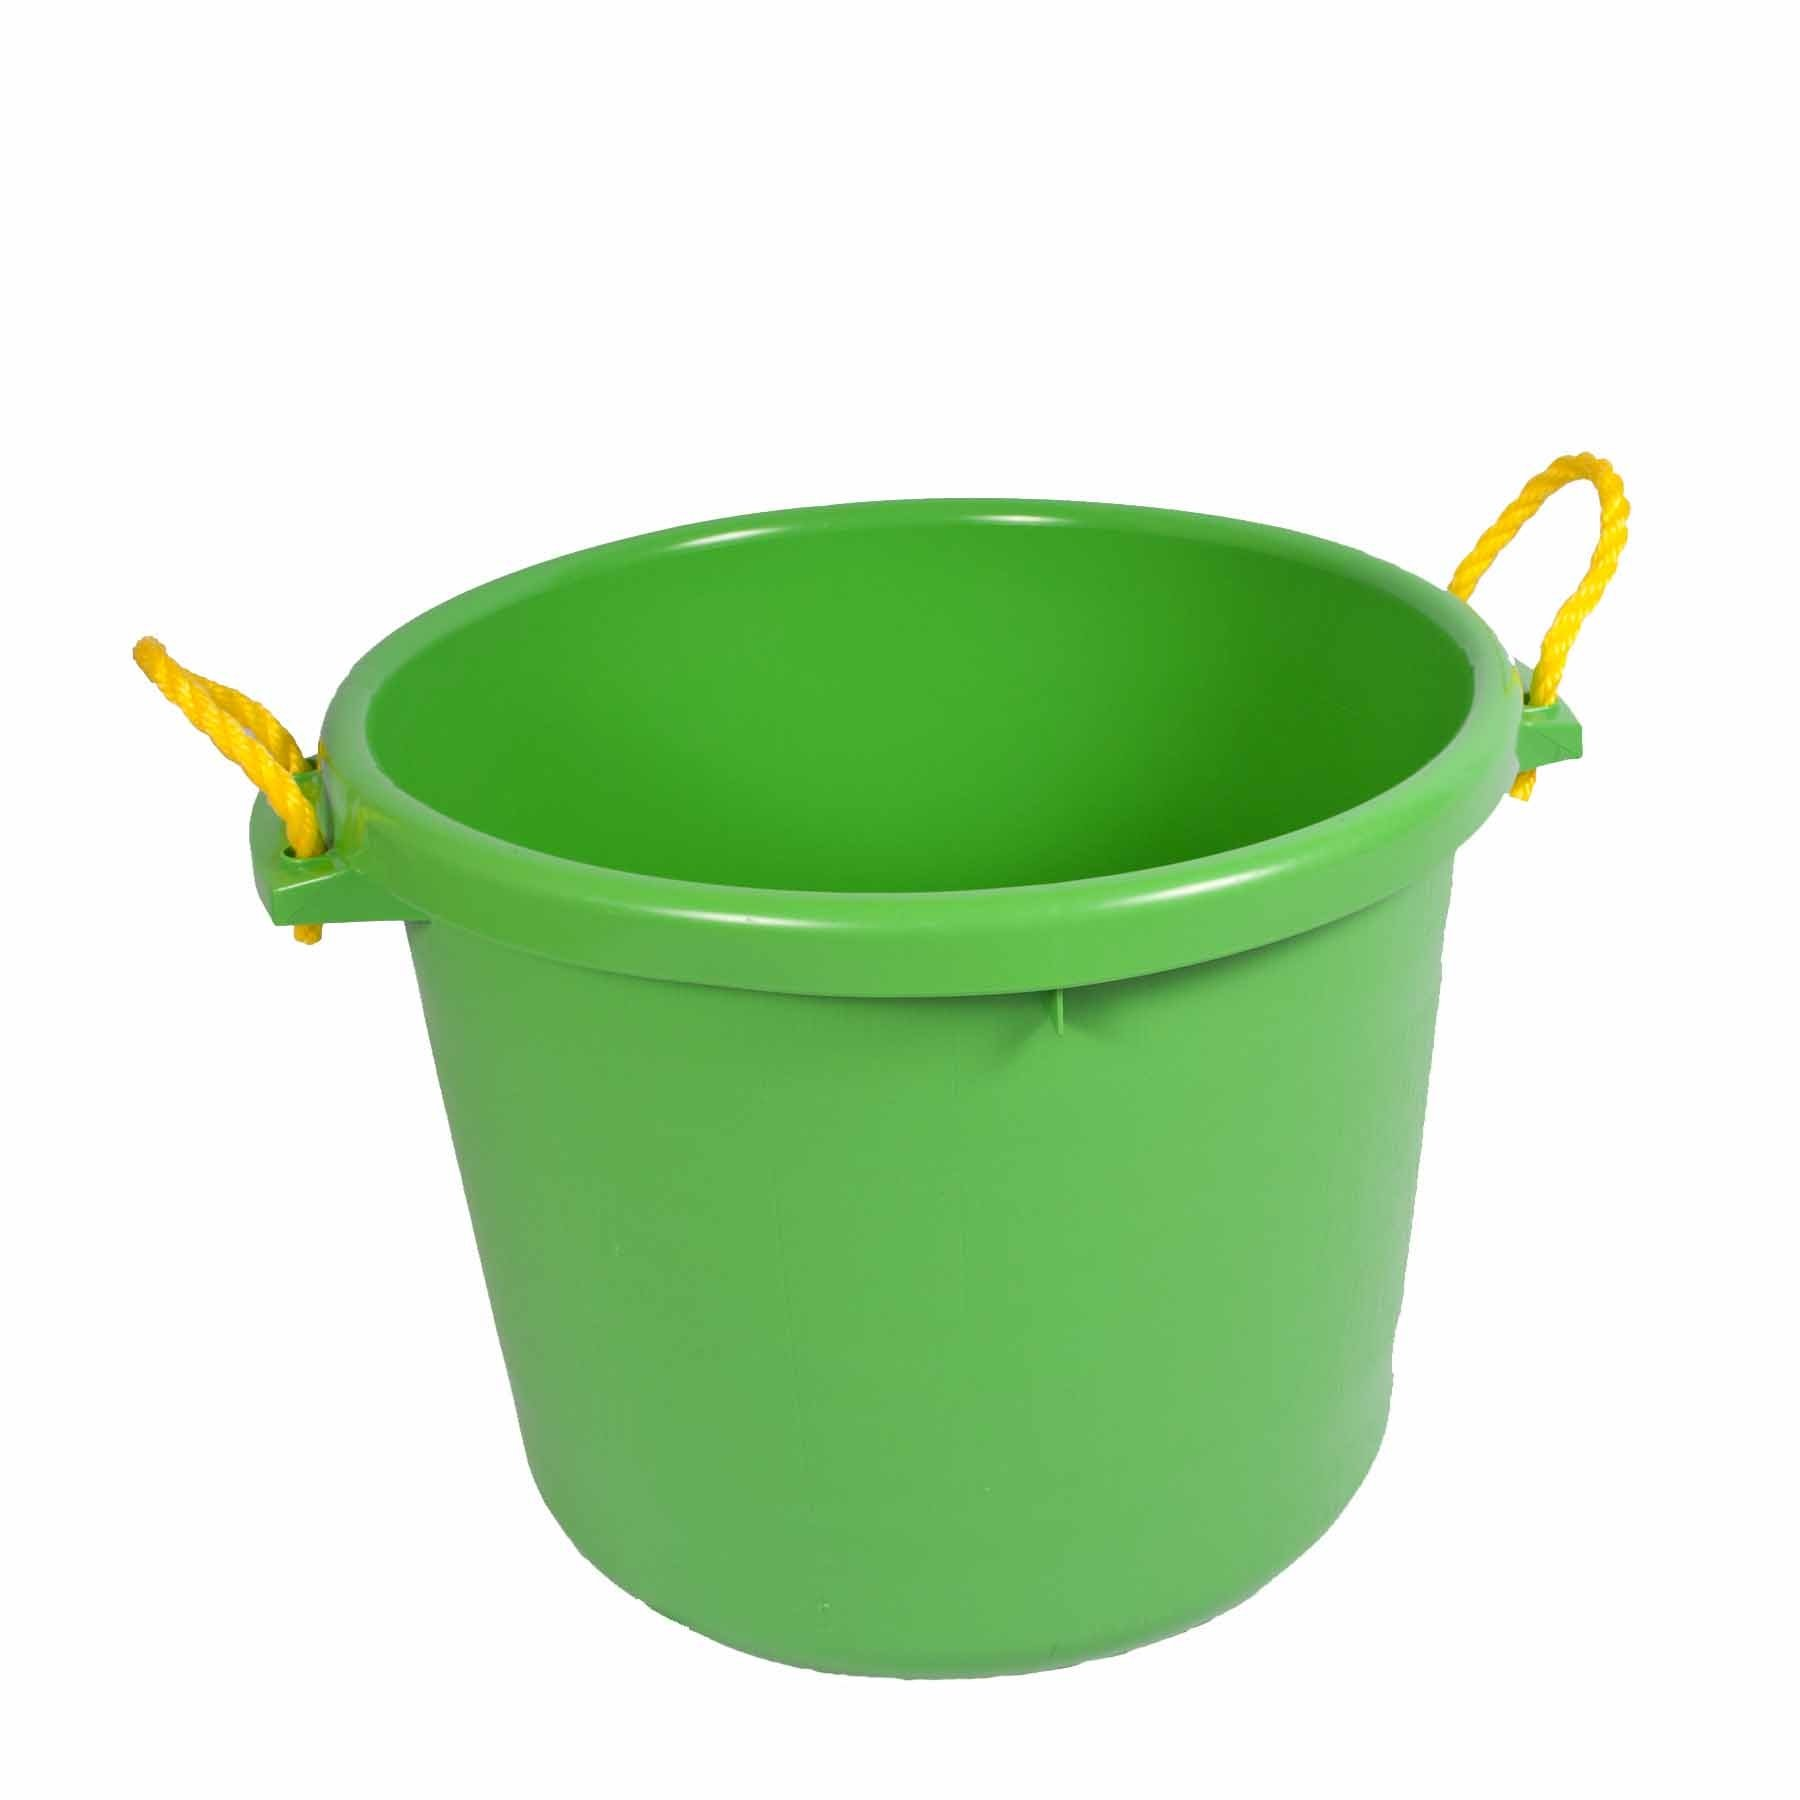 Fortiflex Multi-Purpose Storage Bucket for Dogs/Cats and Horses, 70-Quart, Mango Green by Fortiflex